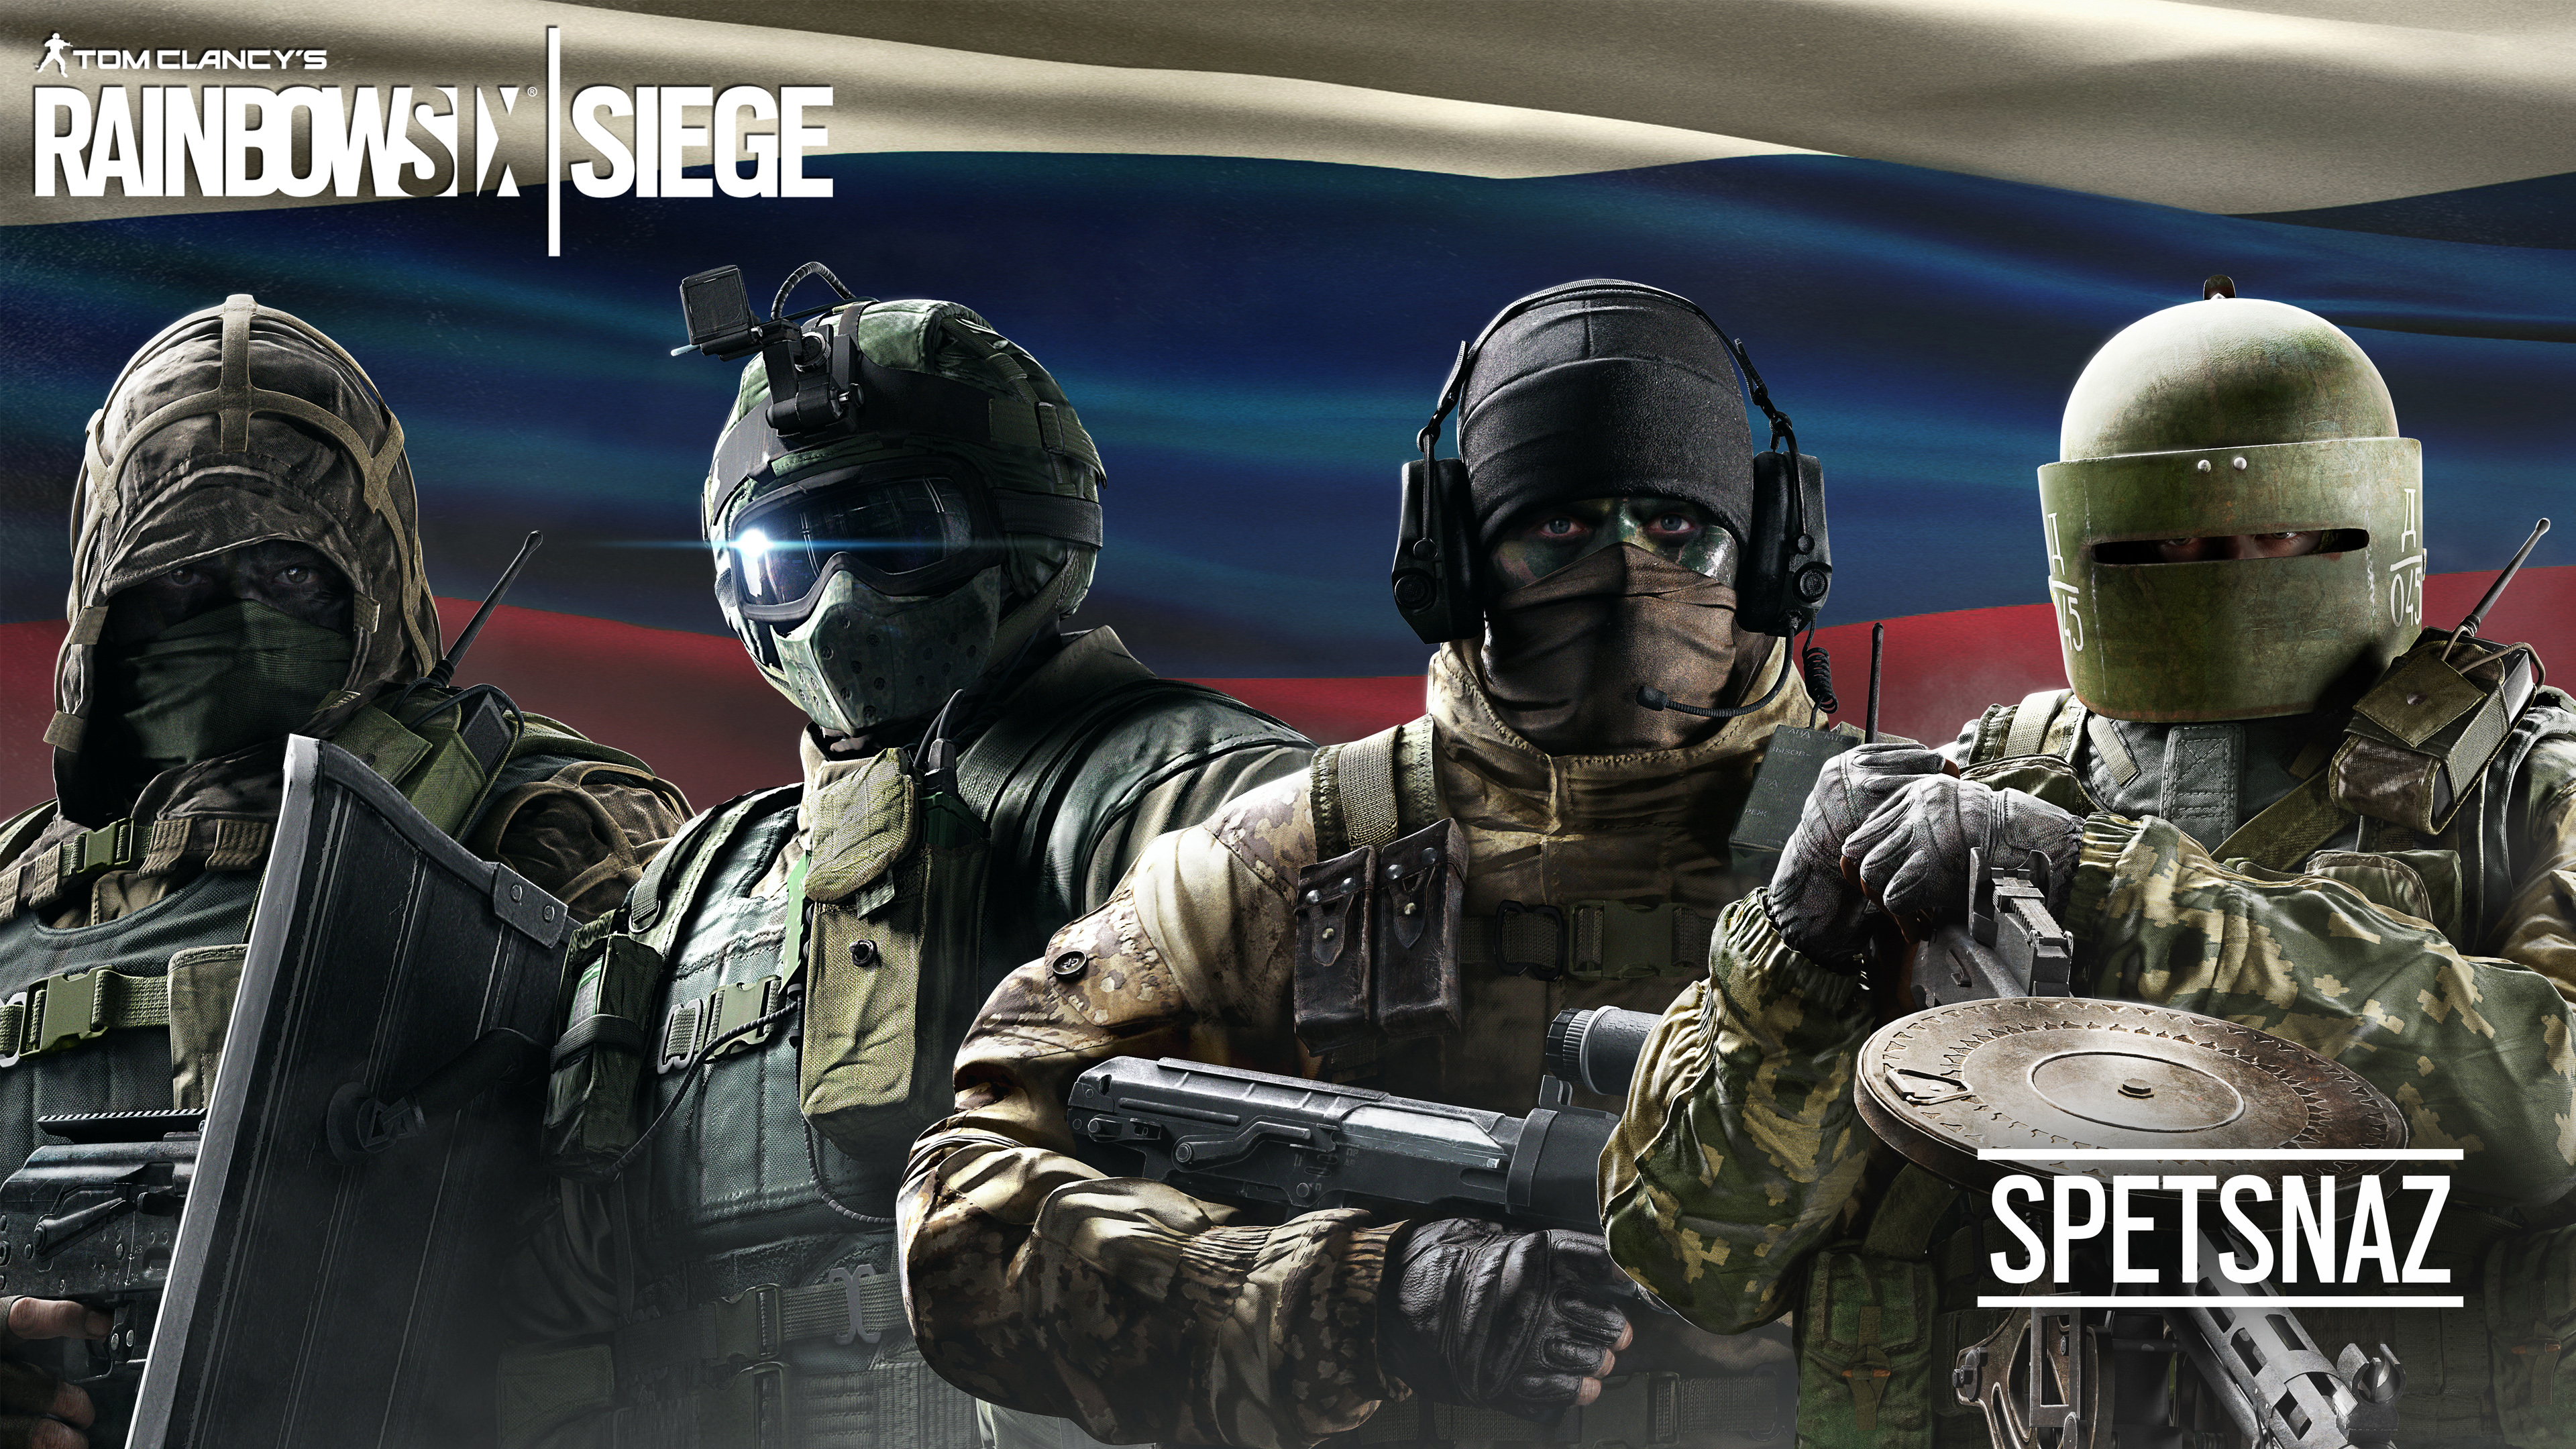 Spetsnaz 4k Wallpapers For Your Desktop Or Mobile Screen Free And